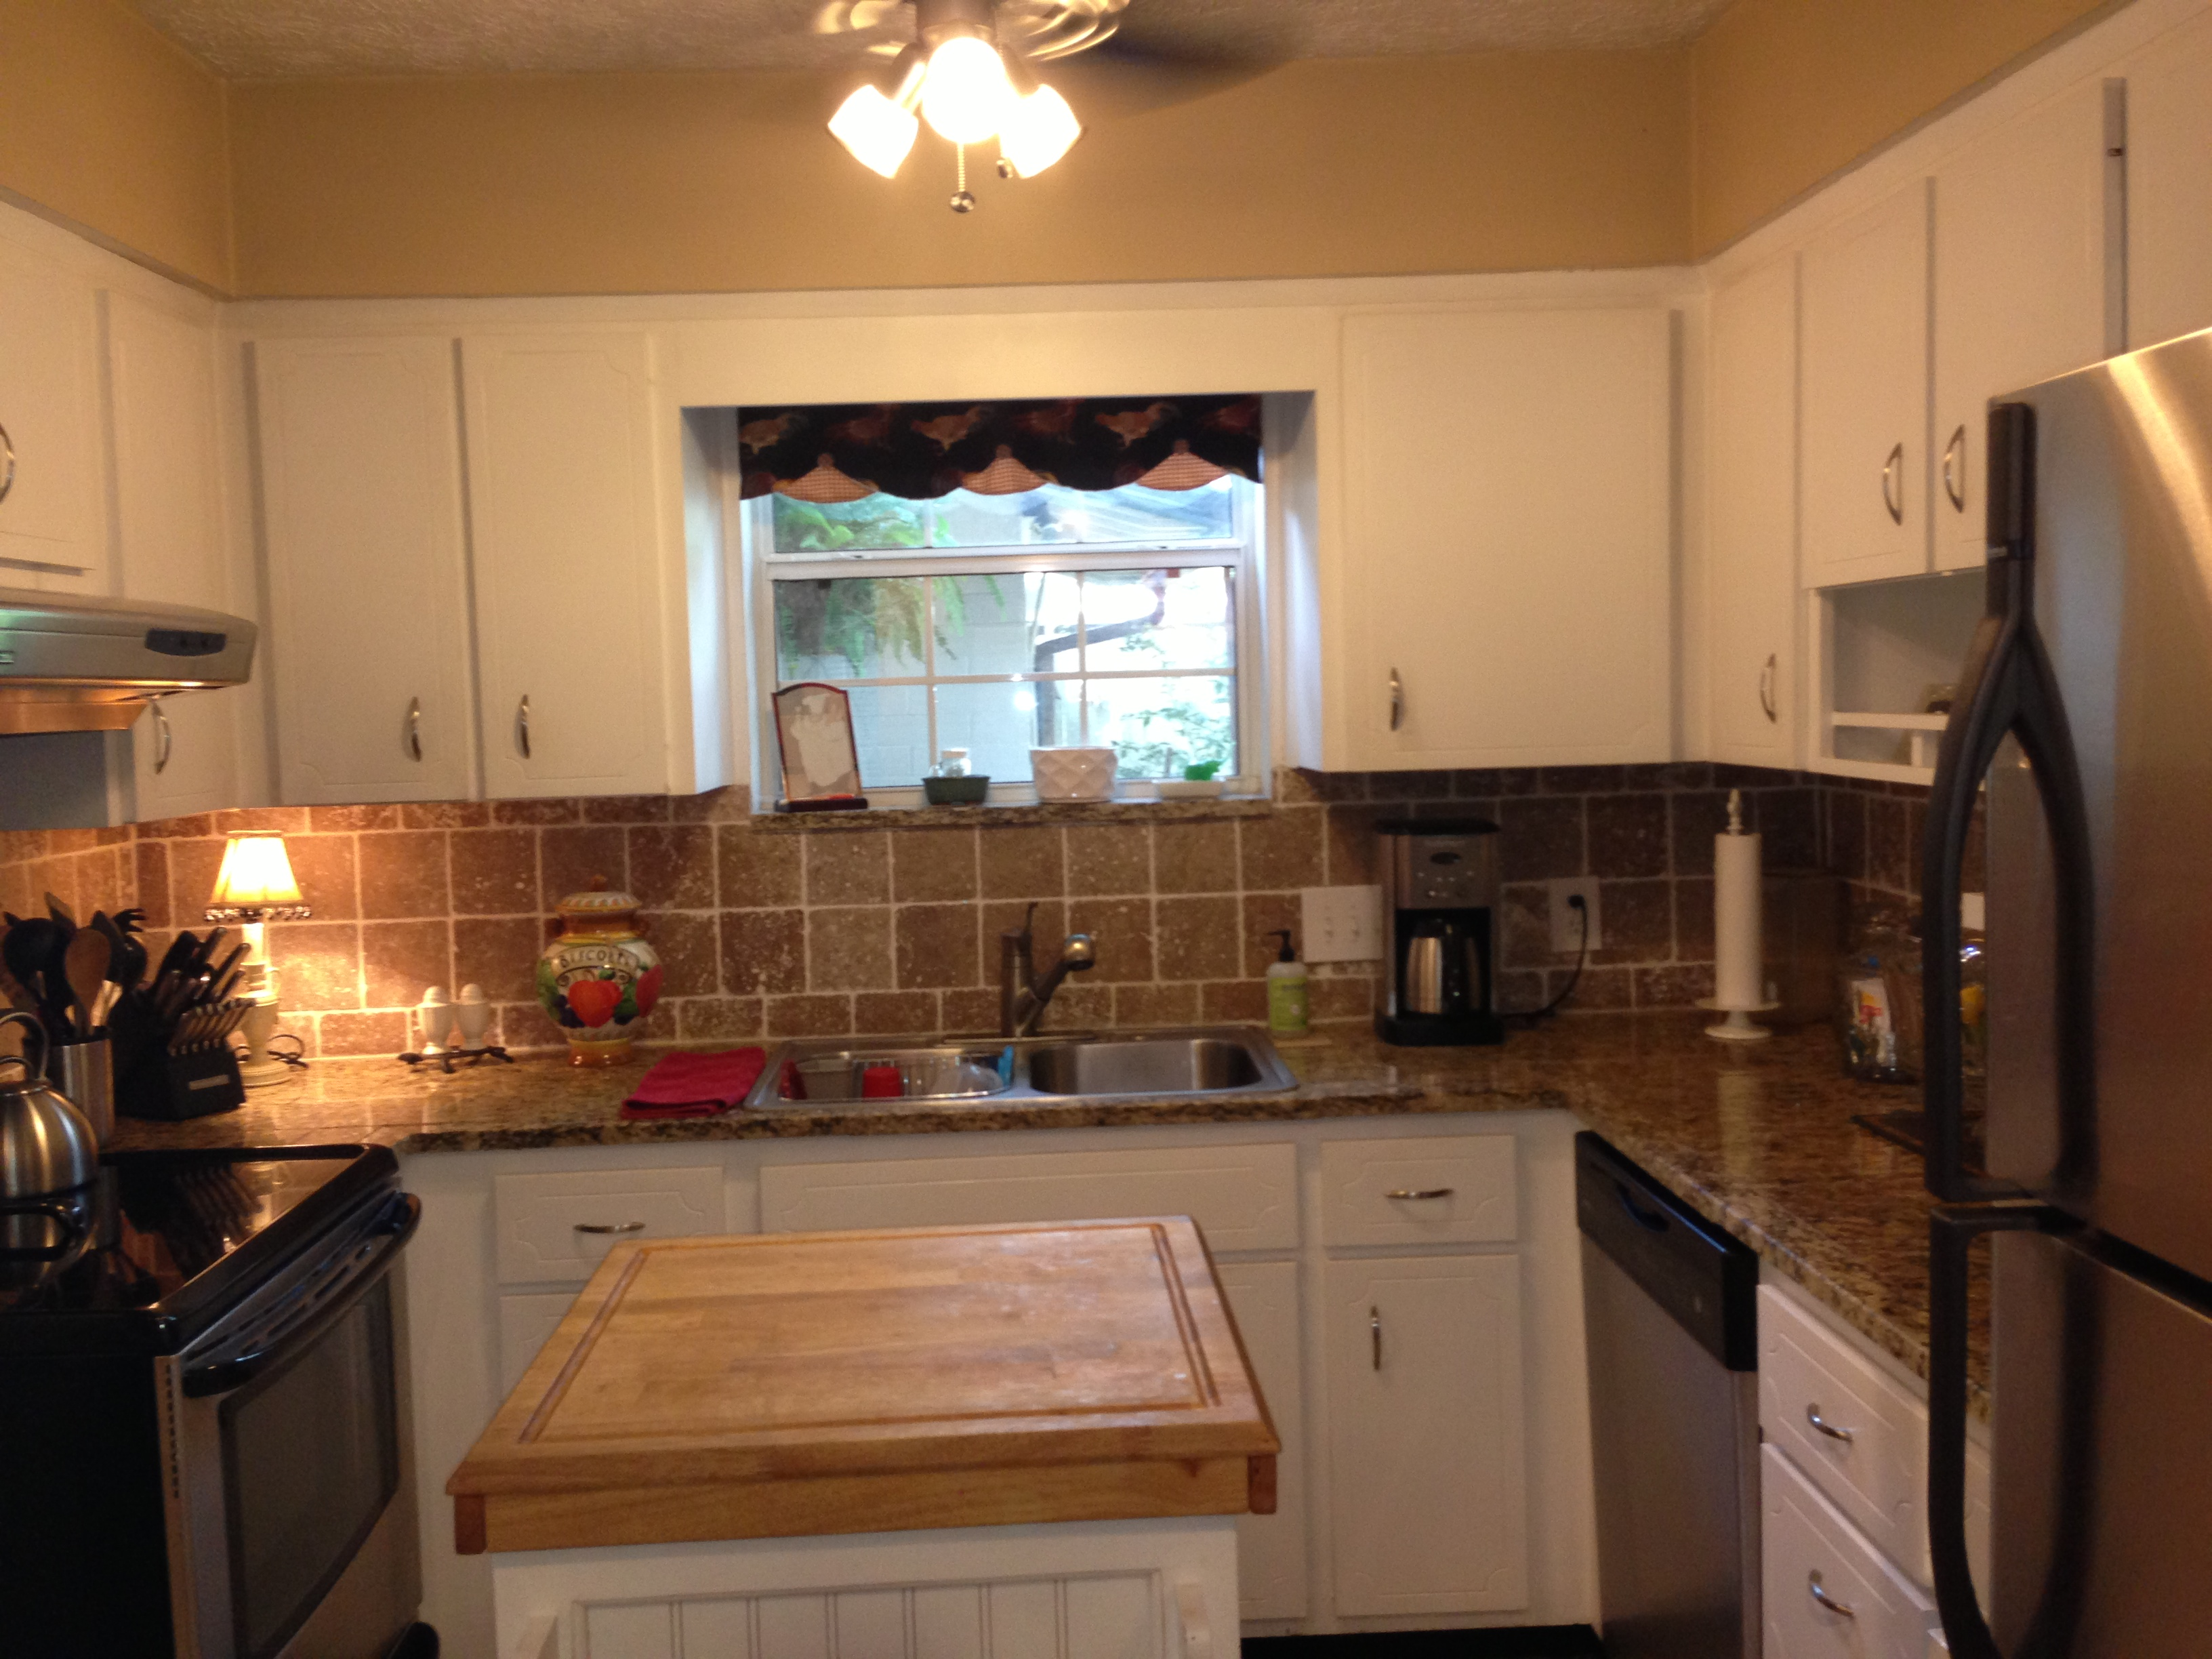 The previous owner's kitchen.